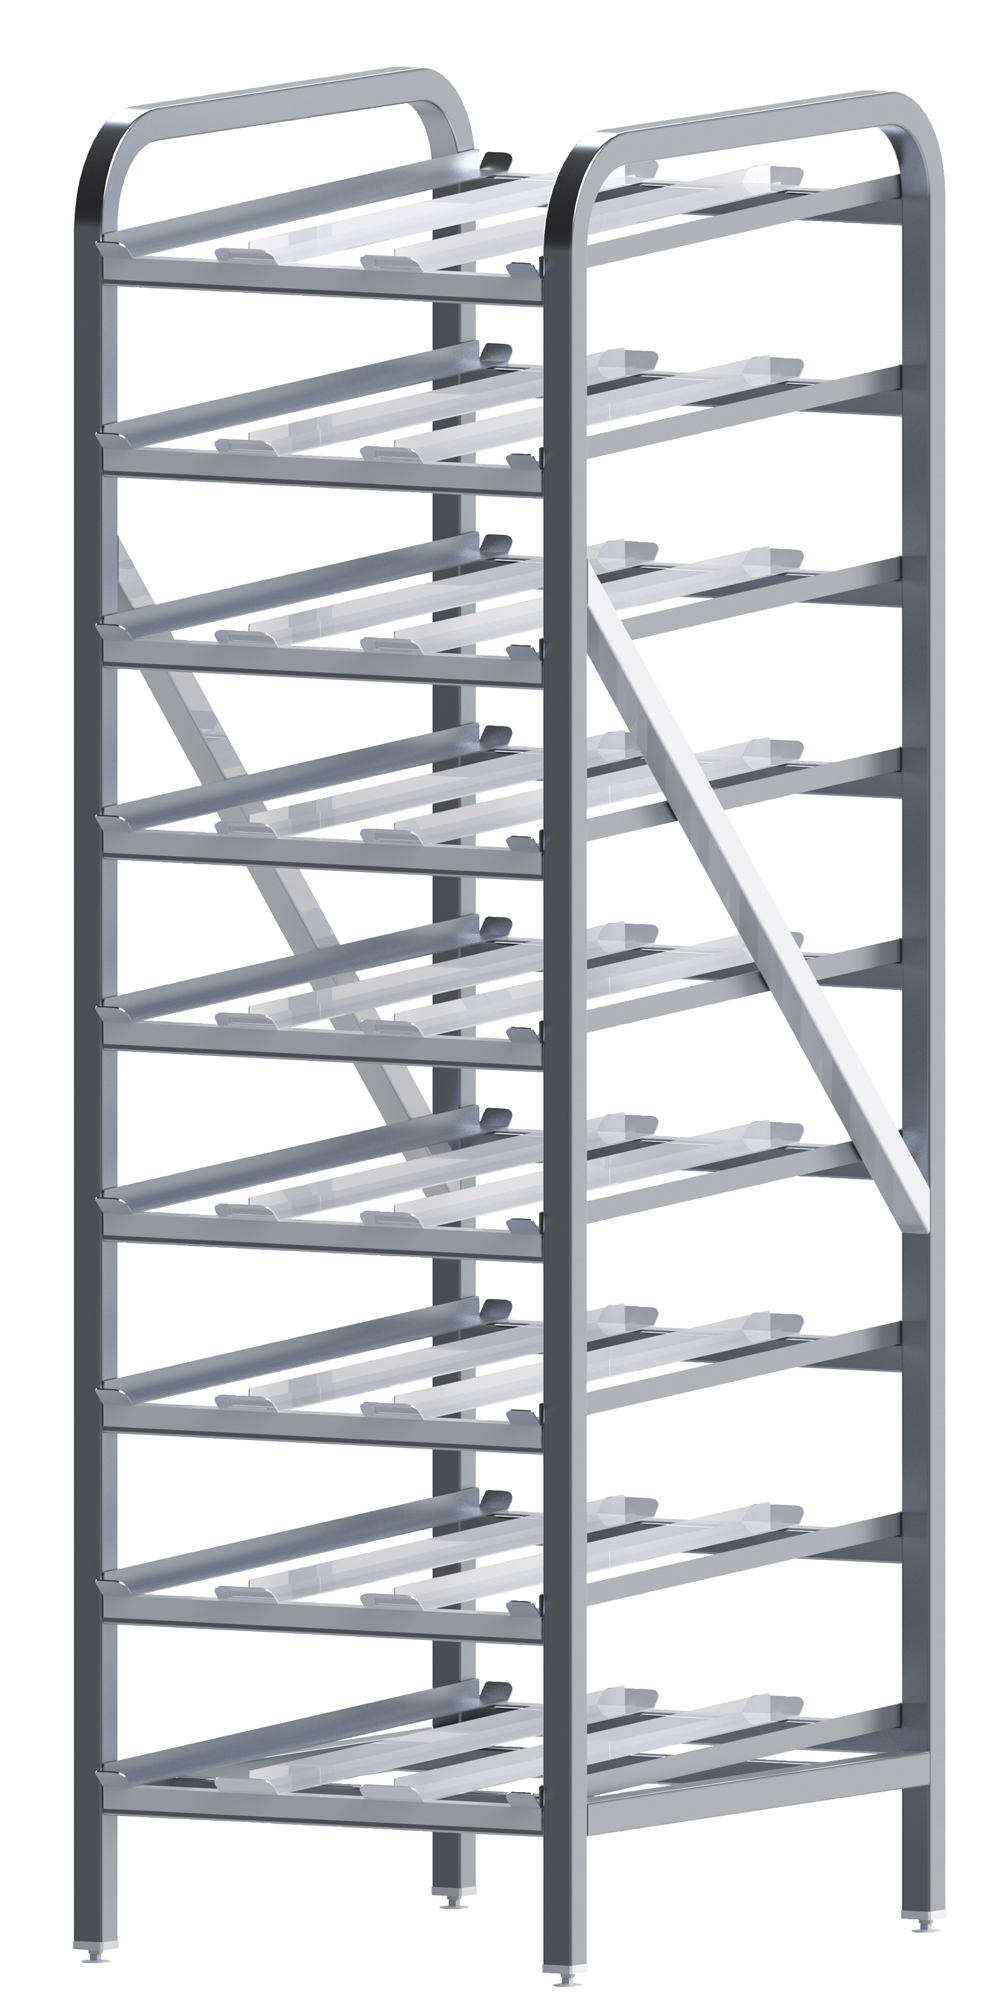 Winco ALCR-9 can storage racks